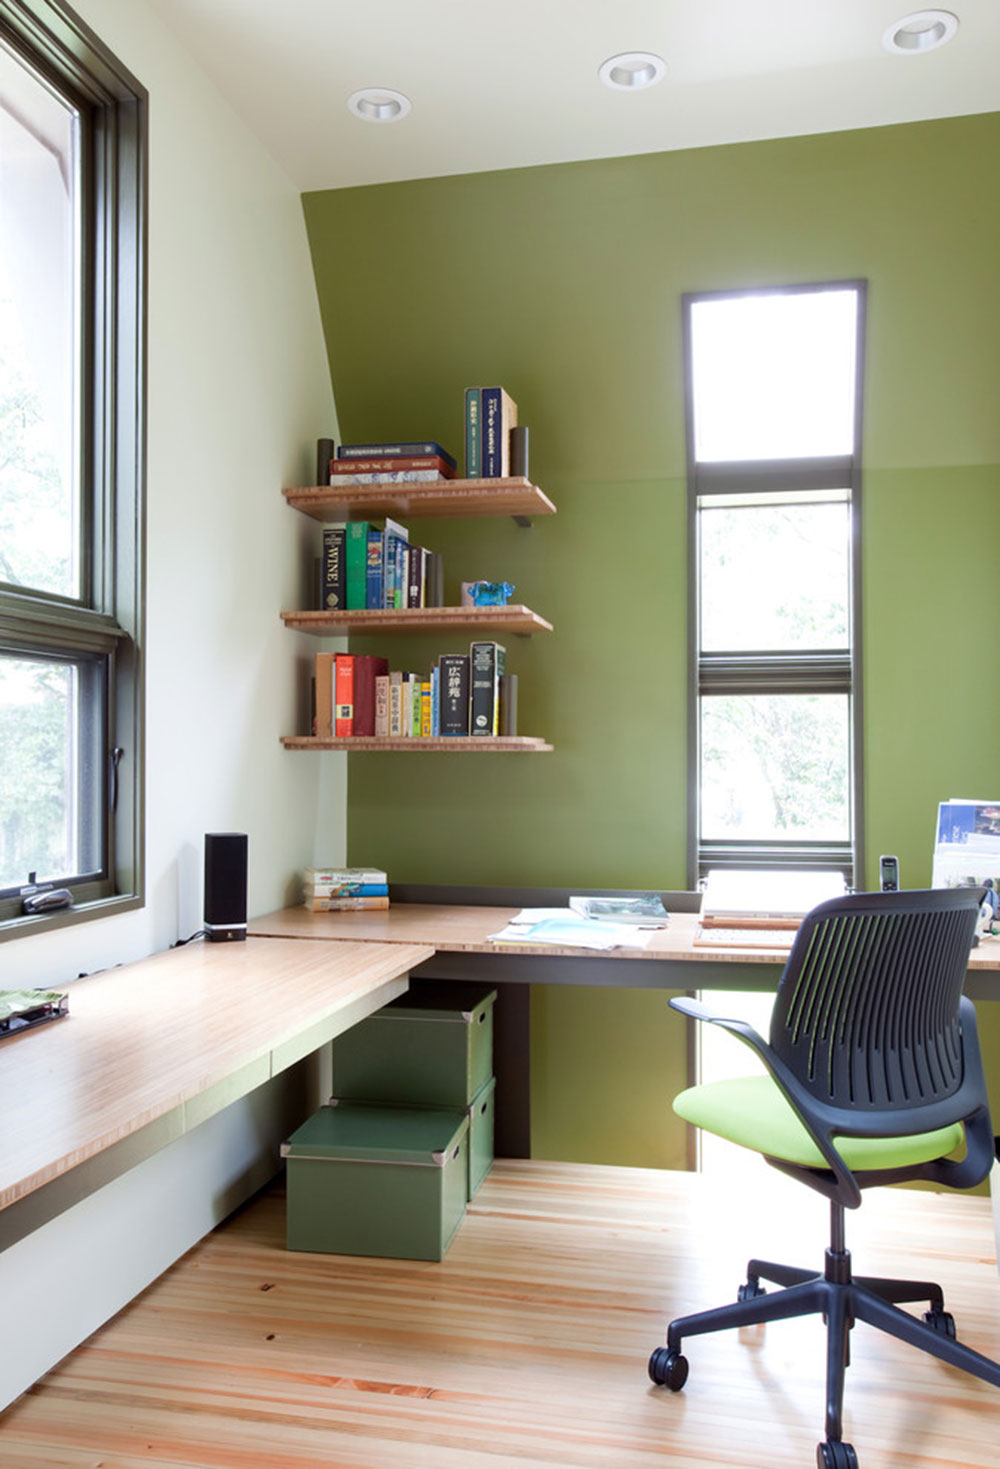 Decorating Your Study Room With Style